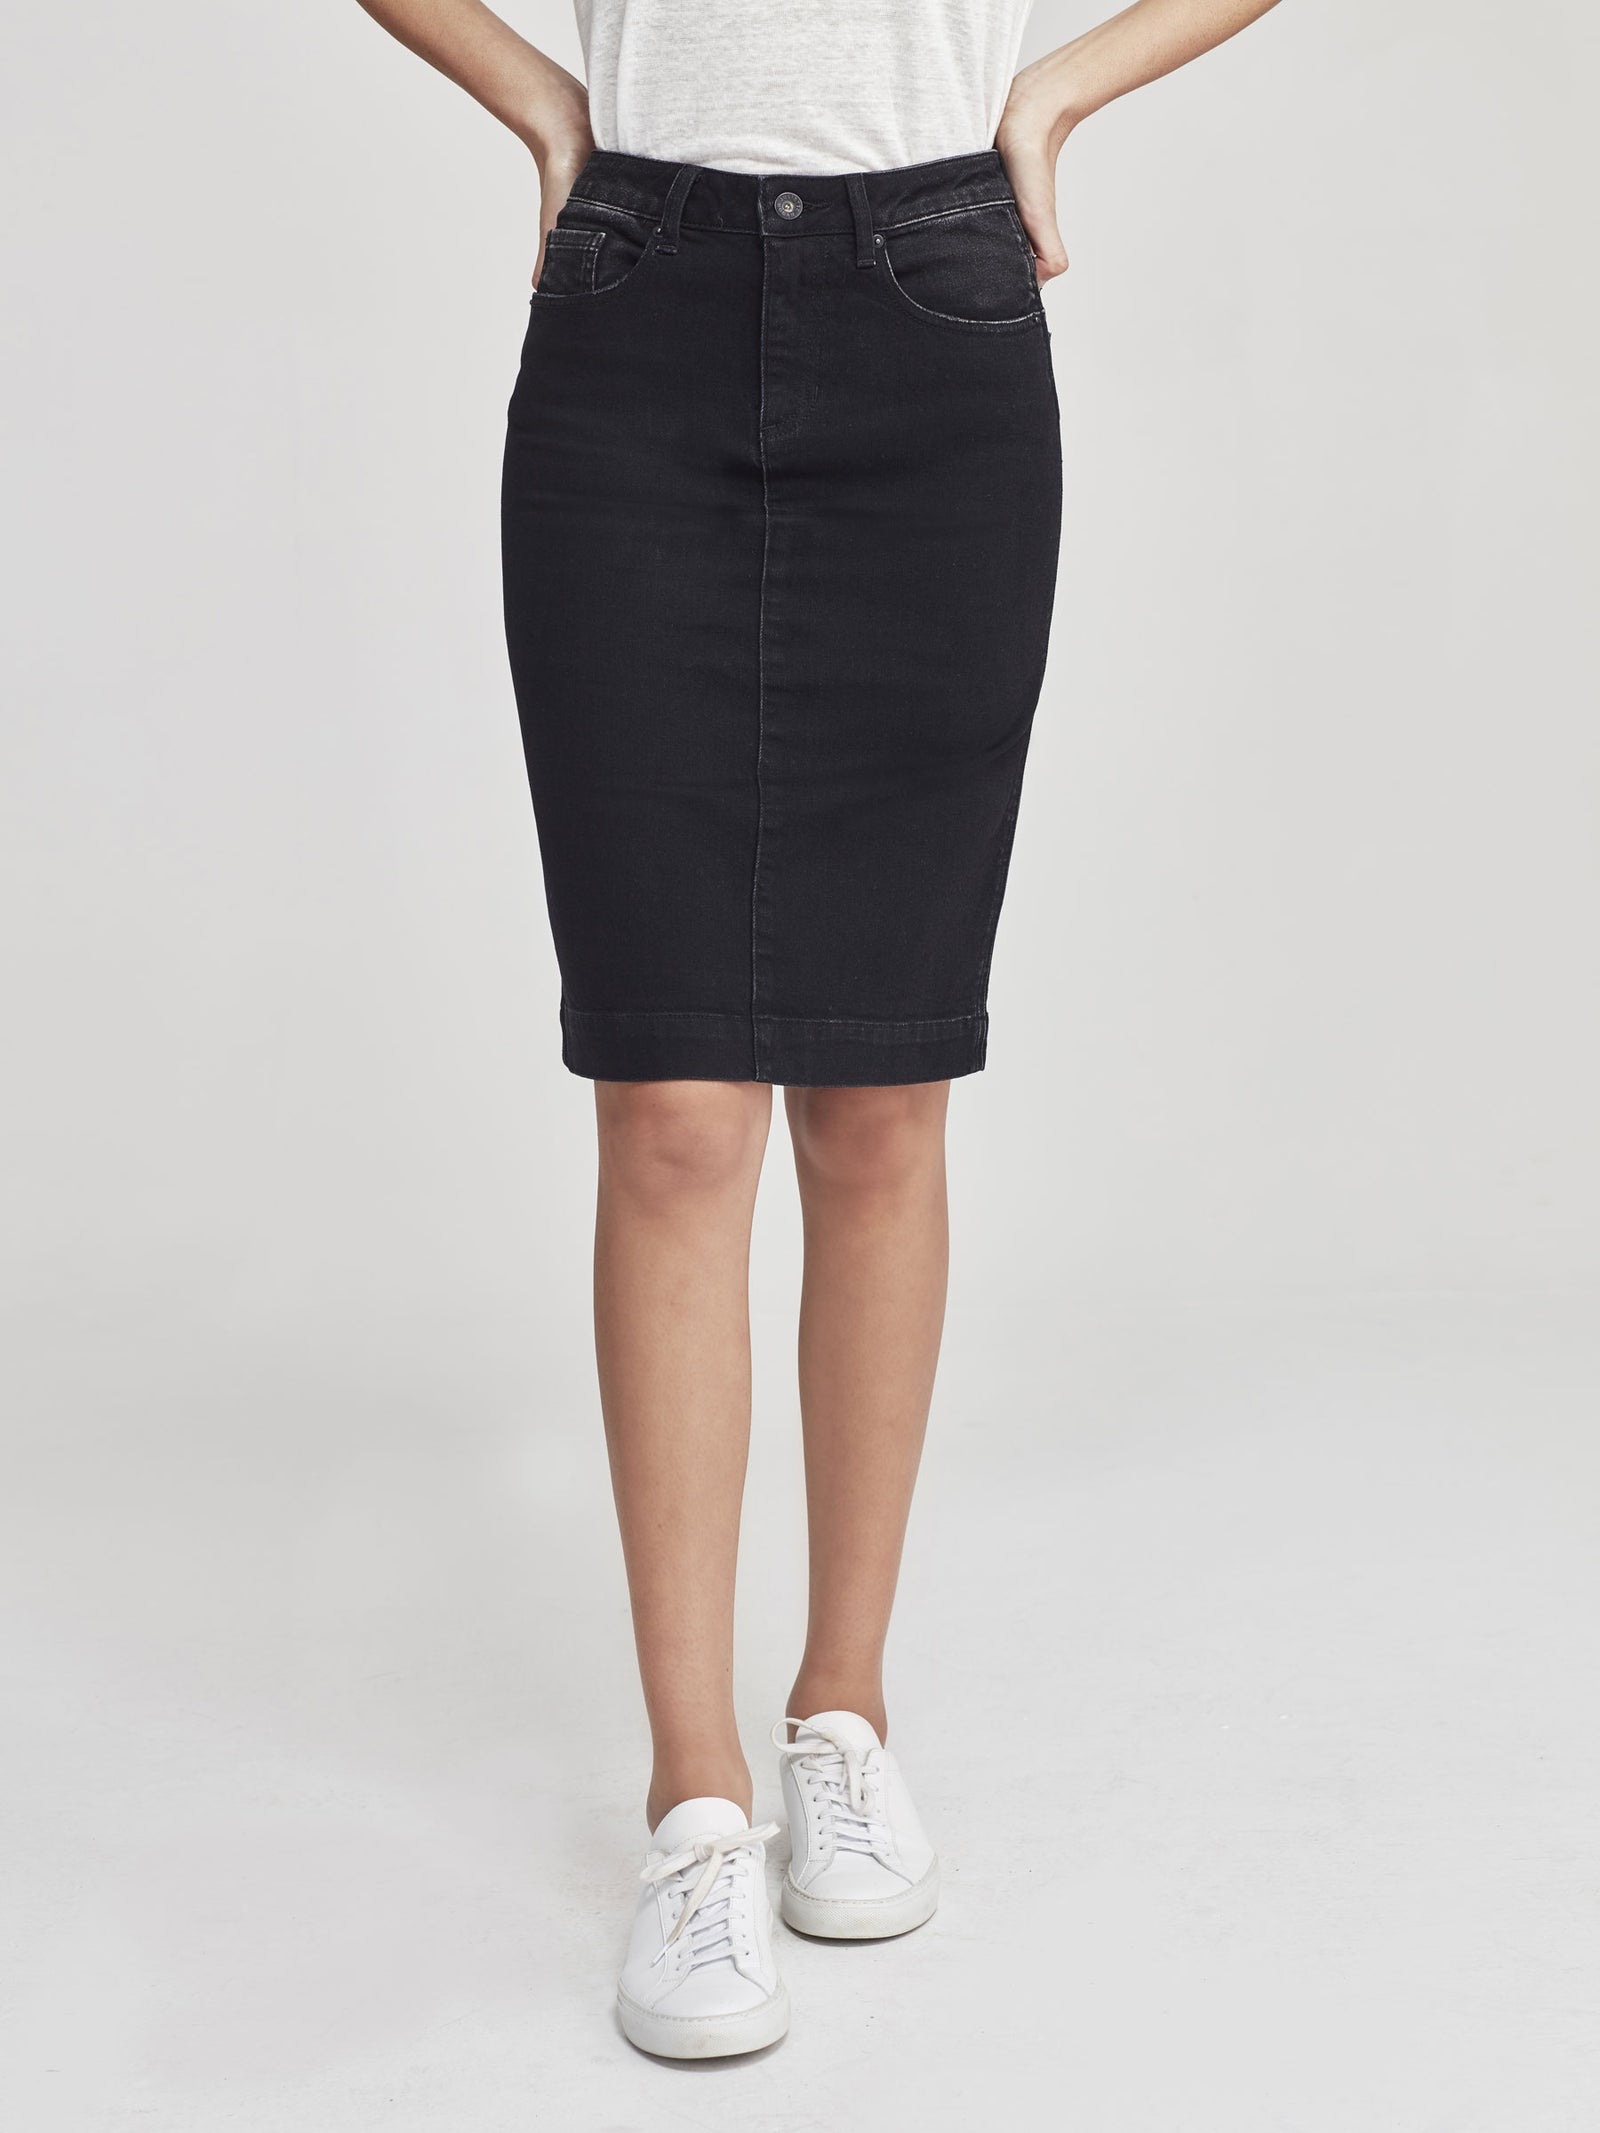 Denim Skirt (Denim) Black Enzyme